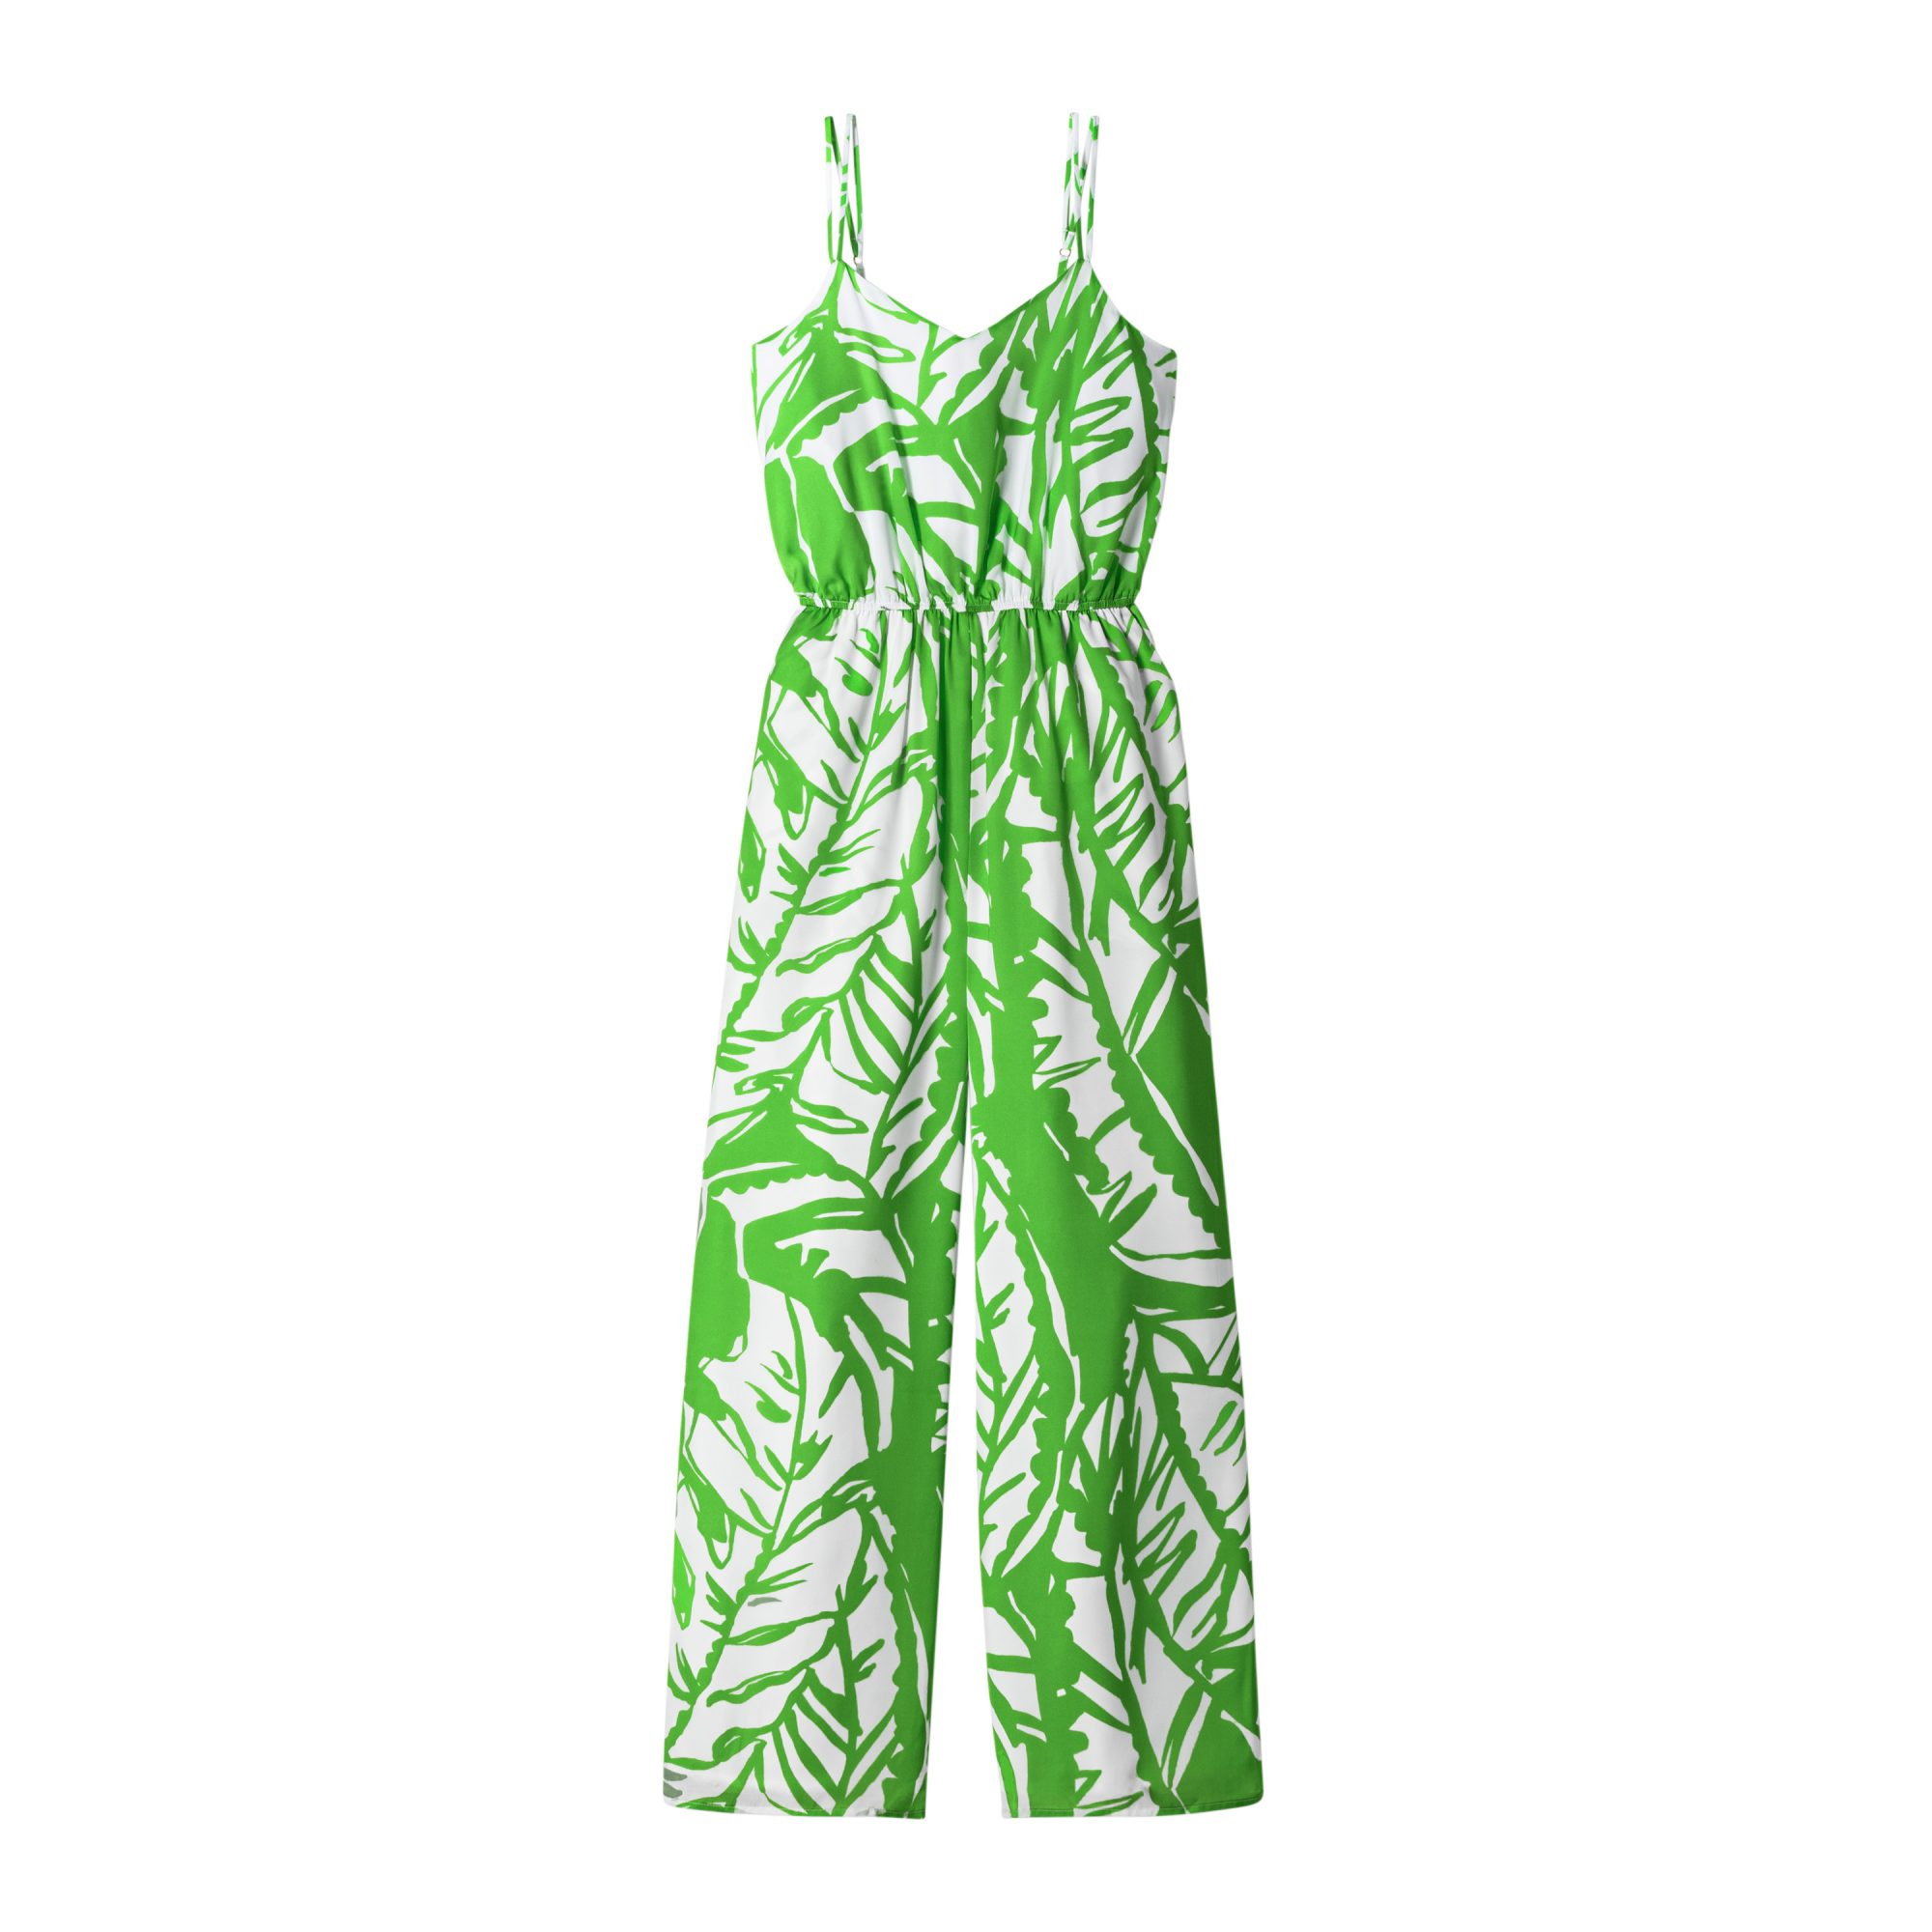 Lilly_Pulitzer_GirlsGreenFloral_Jumpsuit_3